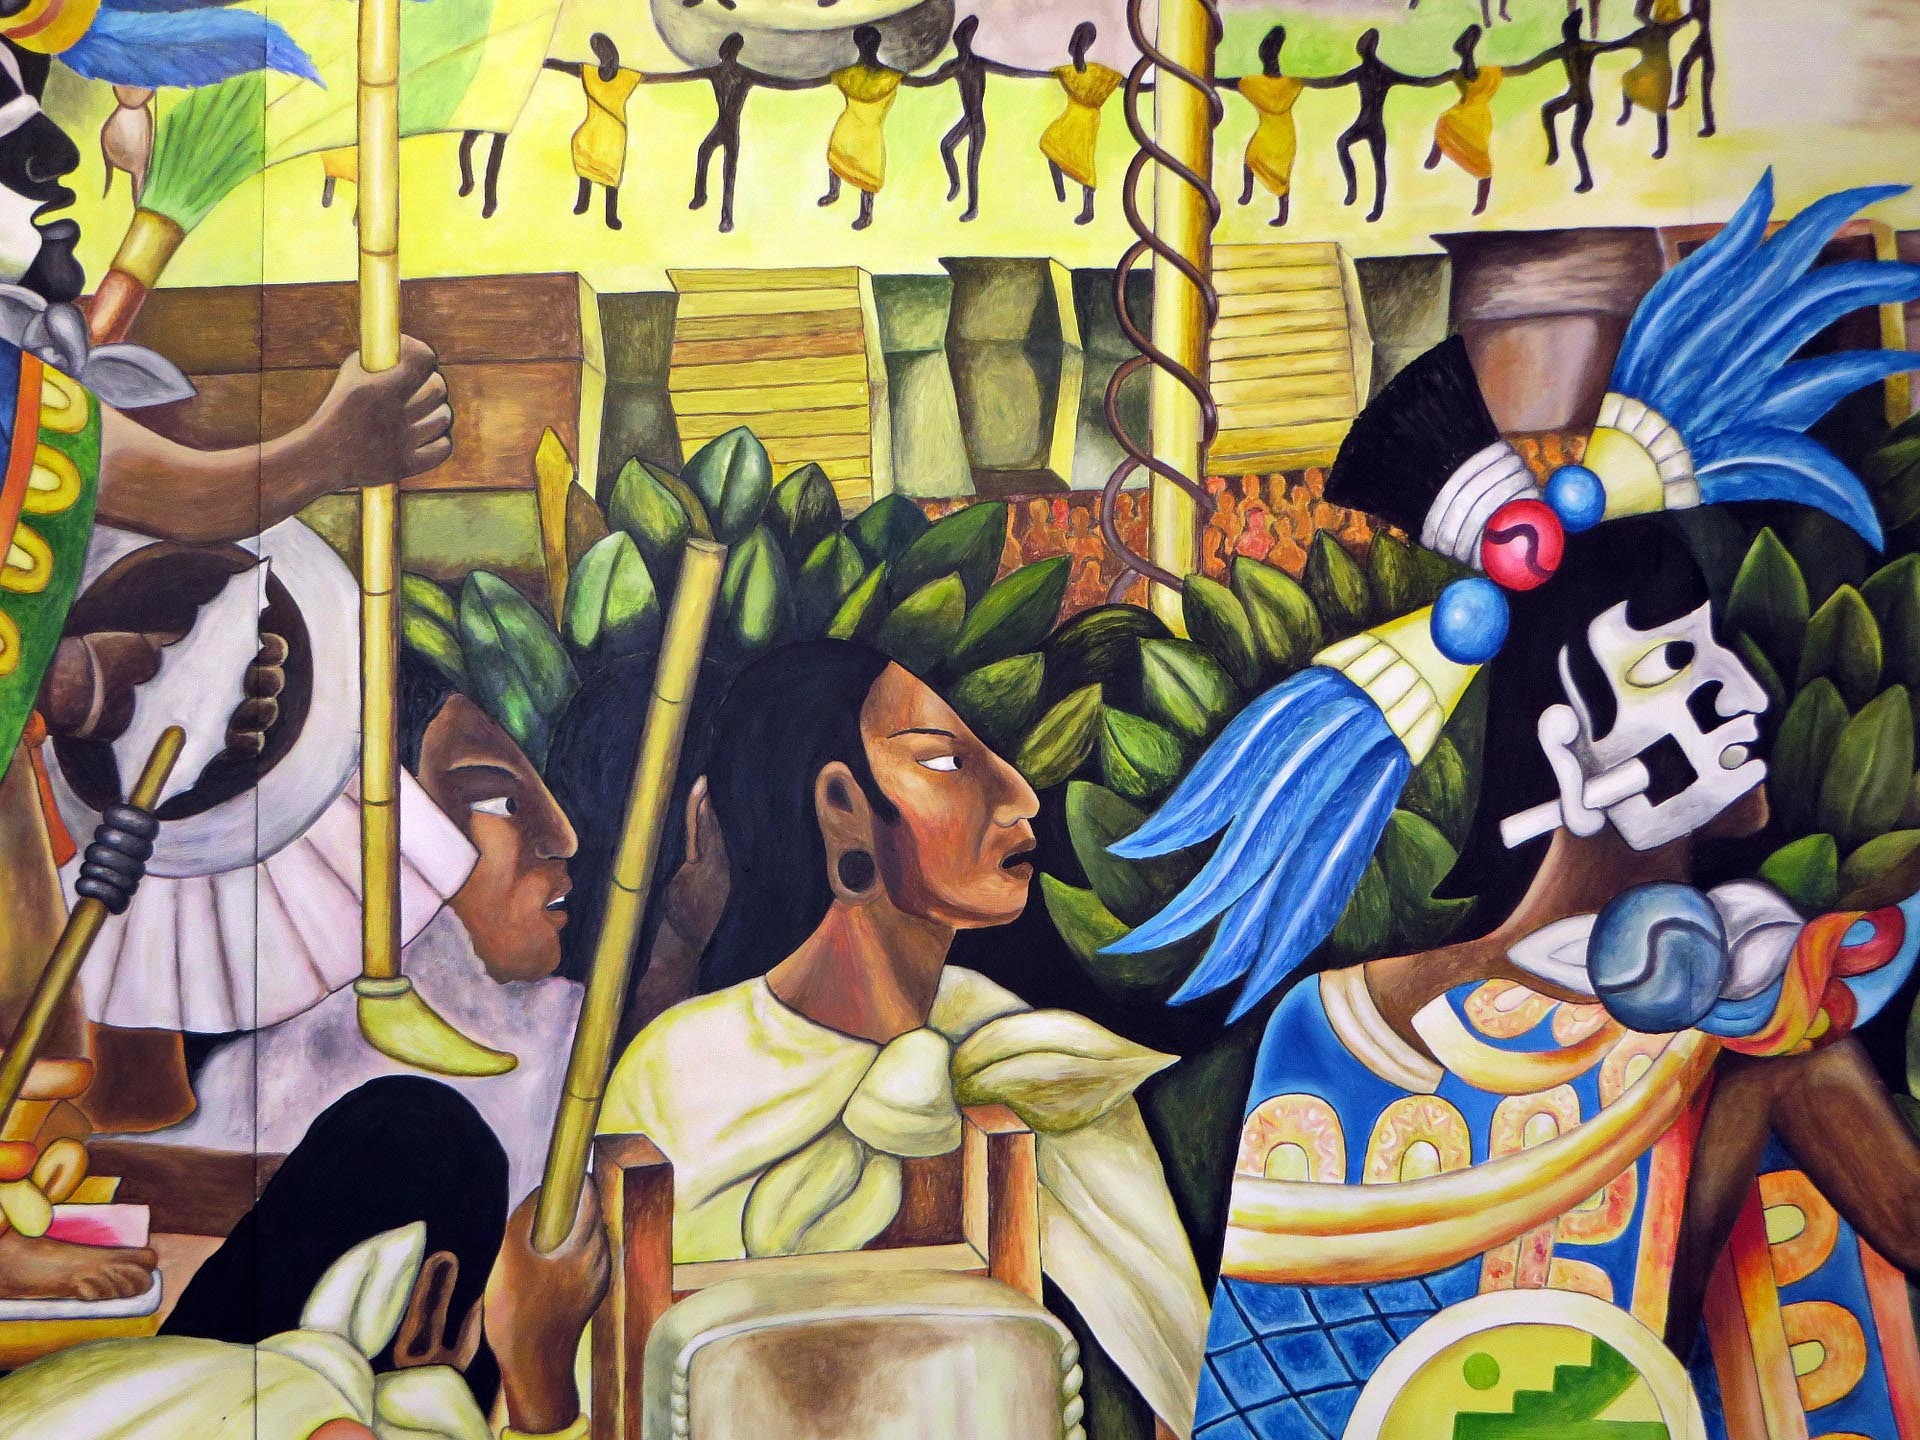 A brilliantly colored Mexican mural showcasing Aztecs.